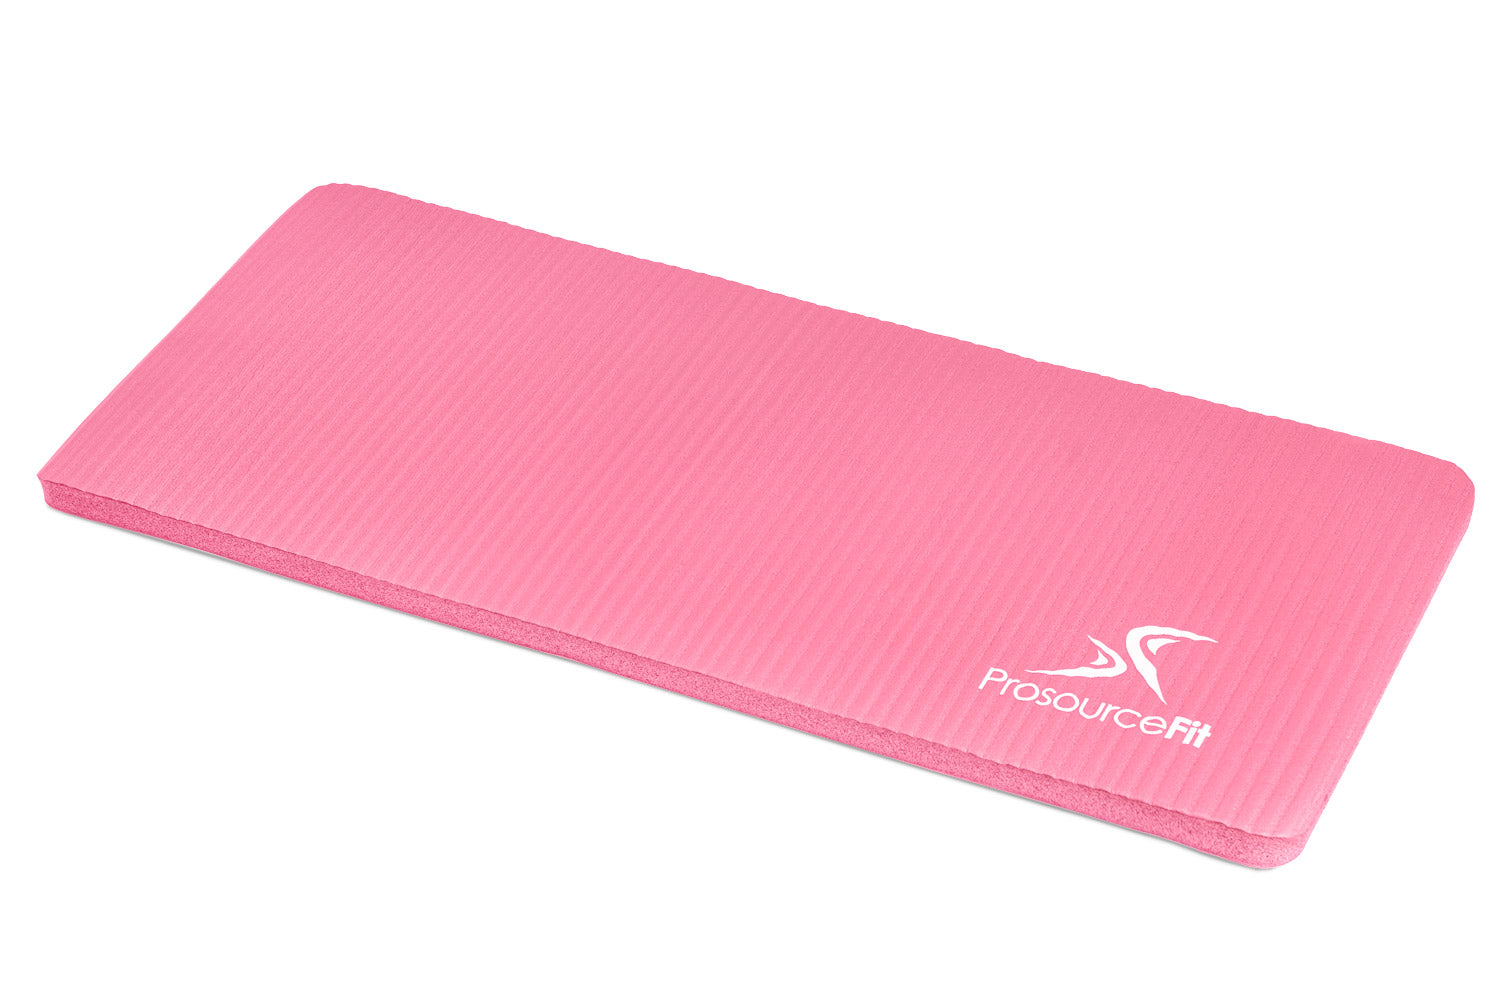 Pink Yoga Knee Pad